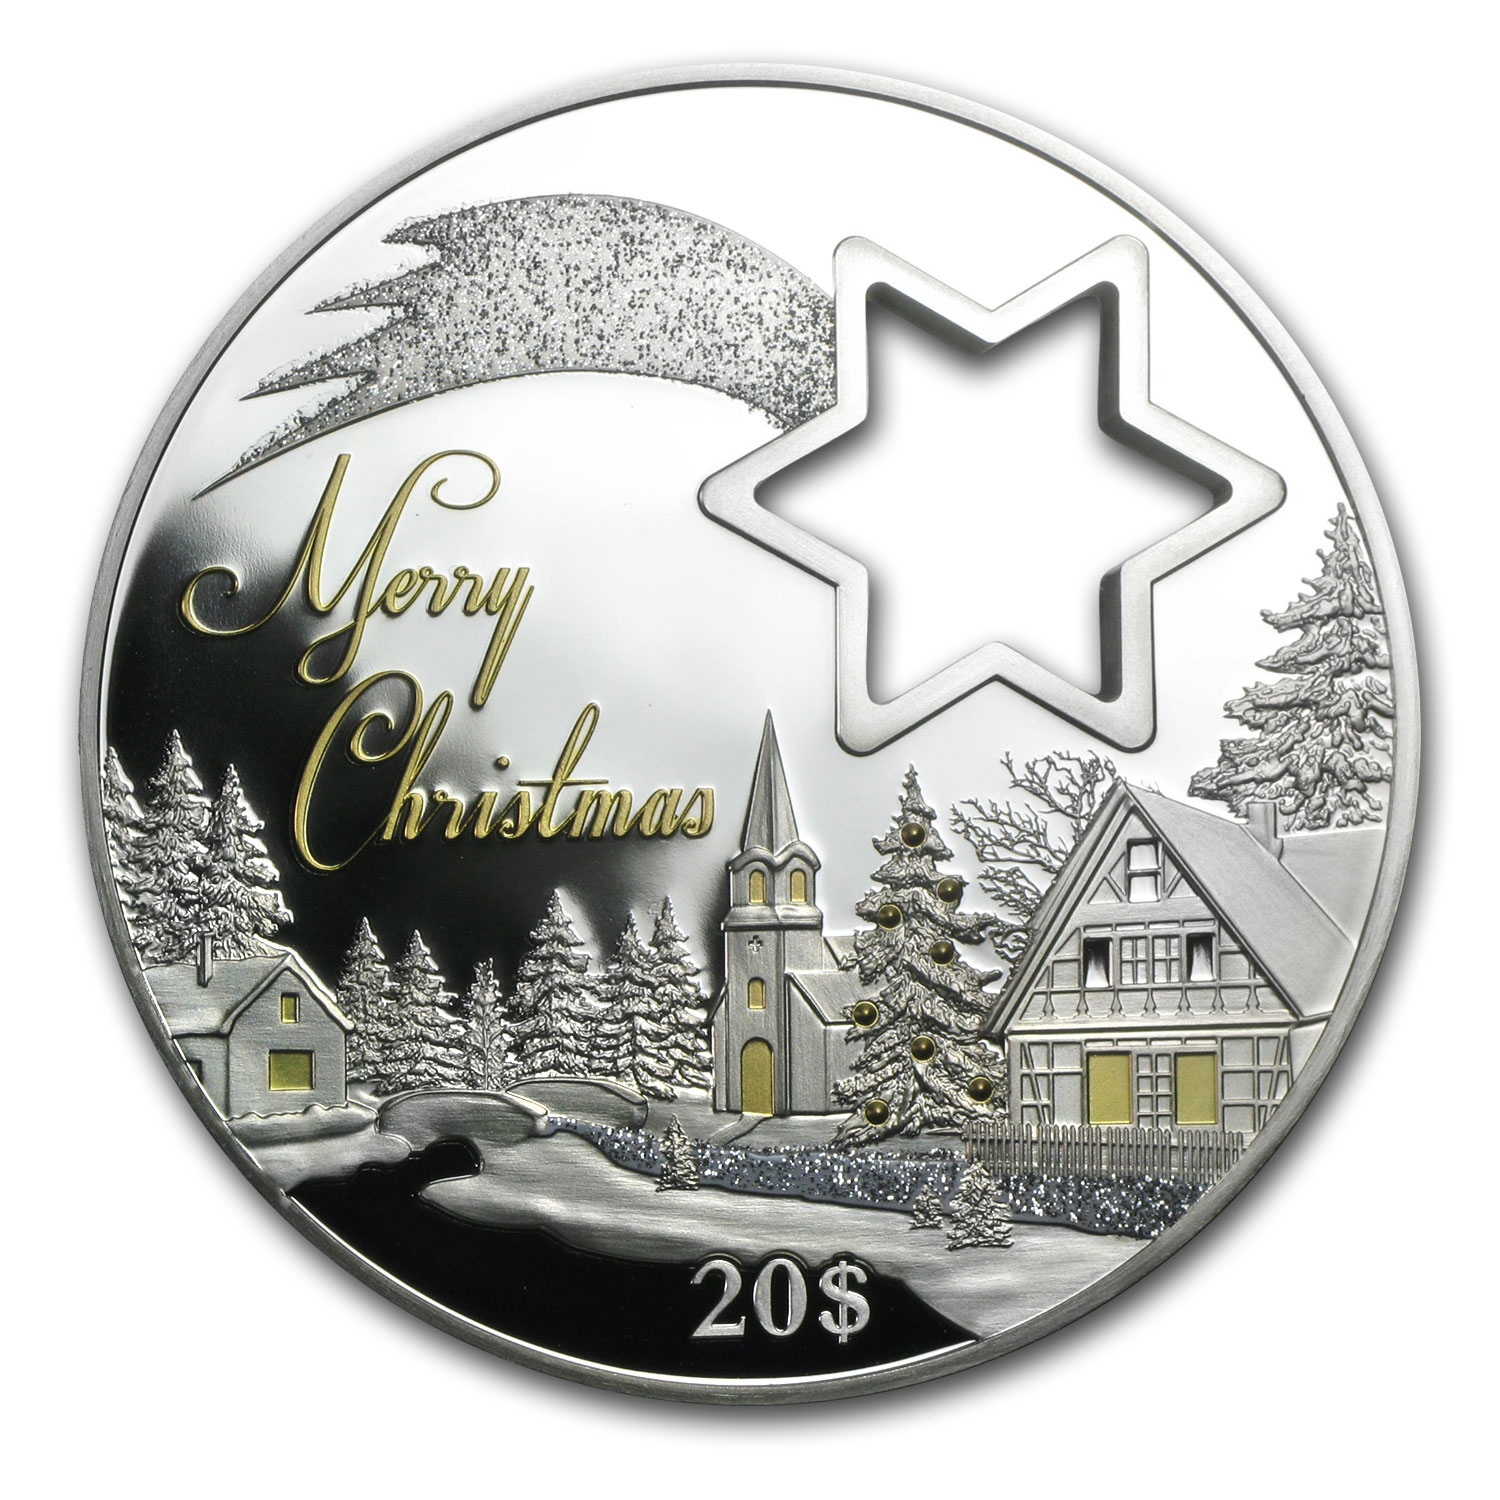 2014 2 oz Proof Silver Winter Wonderland Star Cut-out Coin